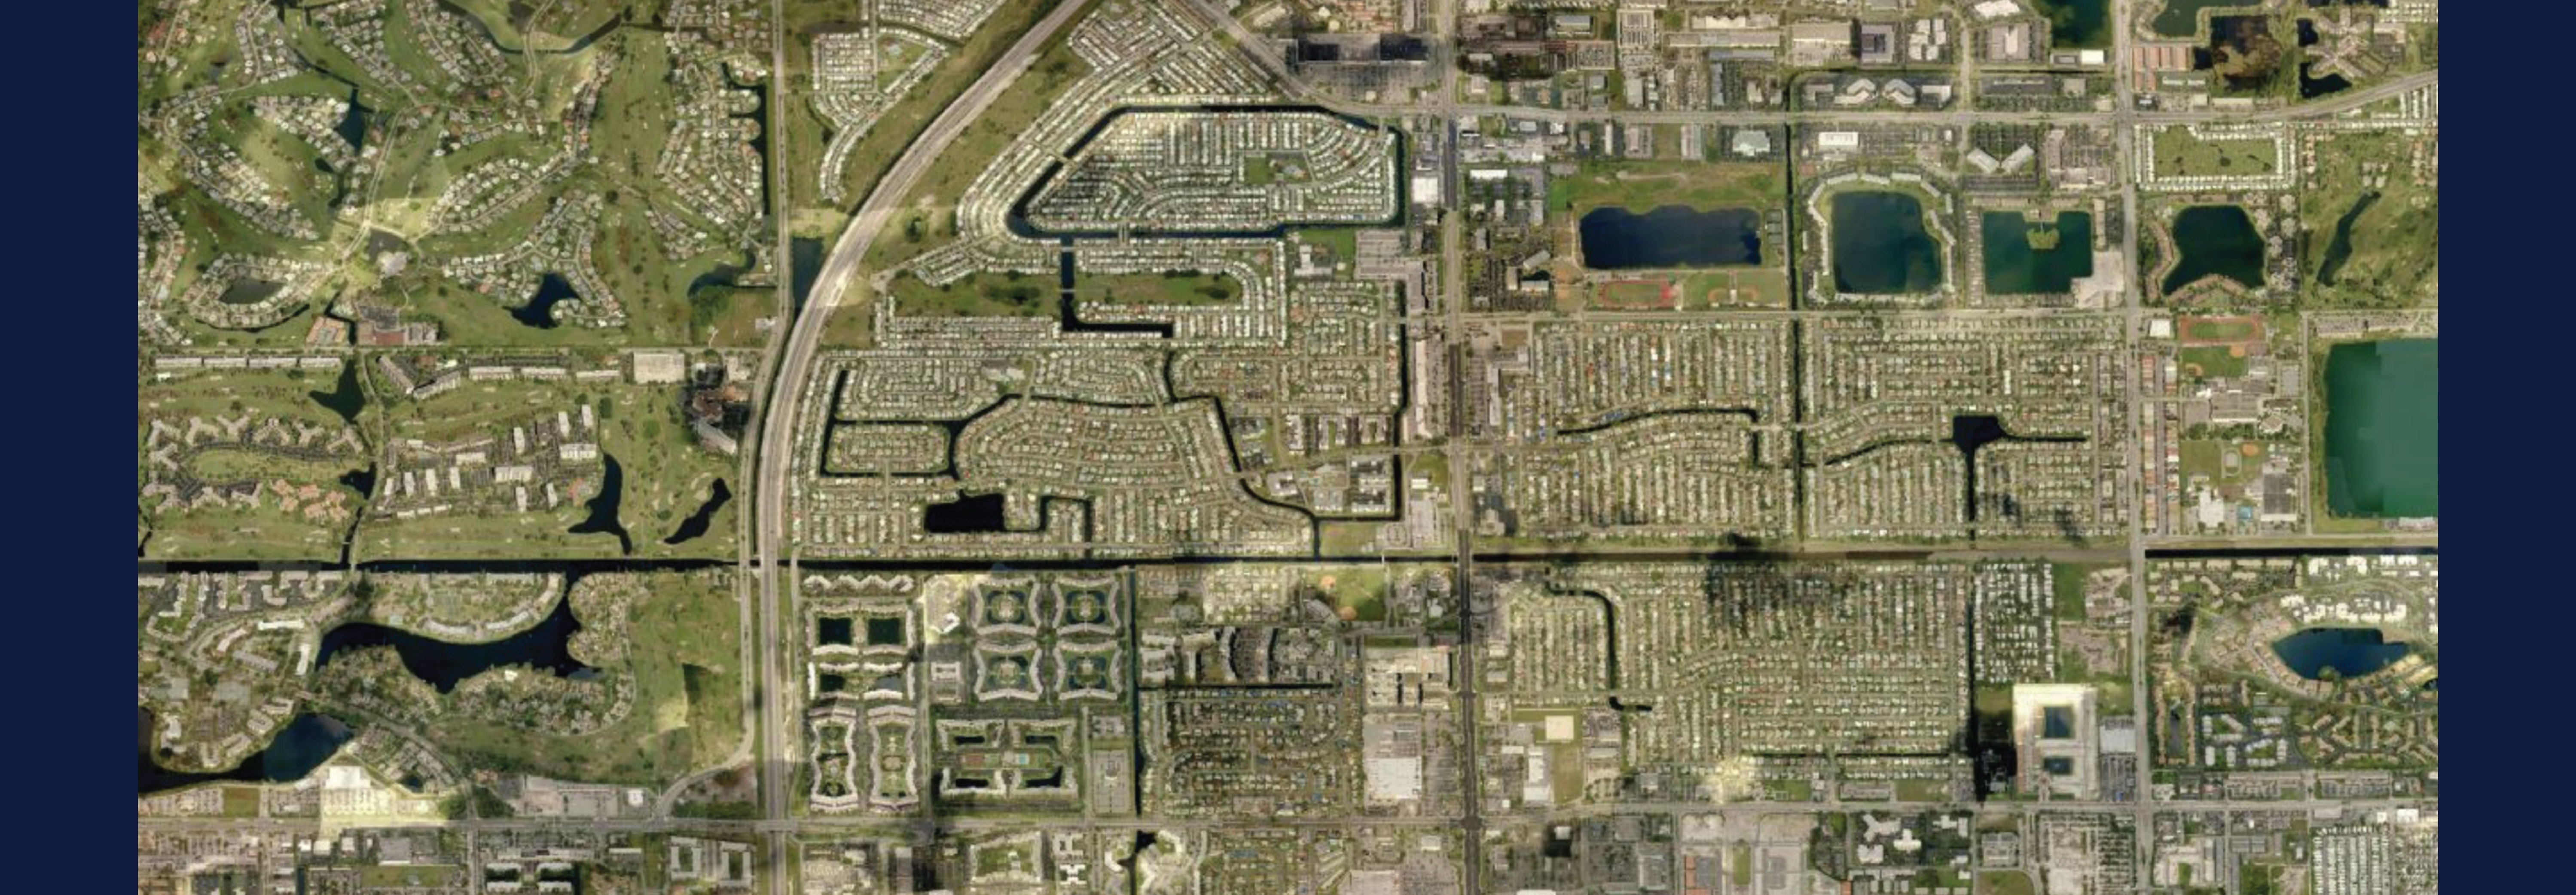 Lauderdale Lakes, Florida. Aerial view of tax parcels for tax assessors using GIS.